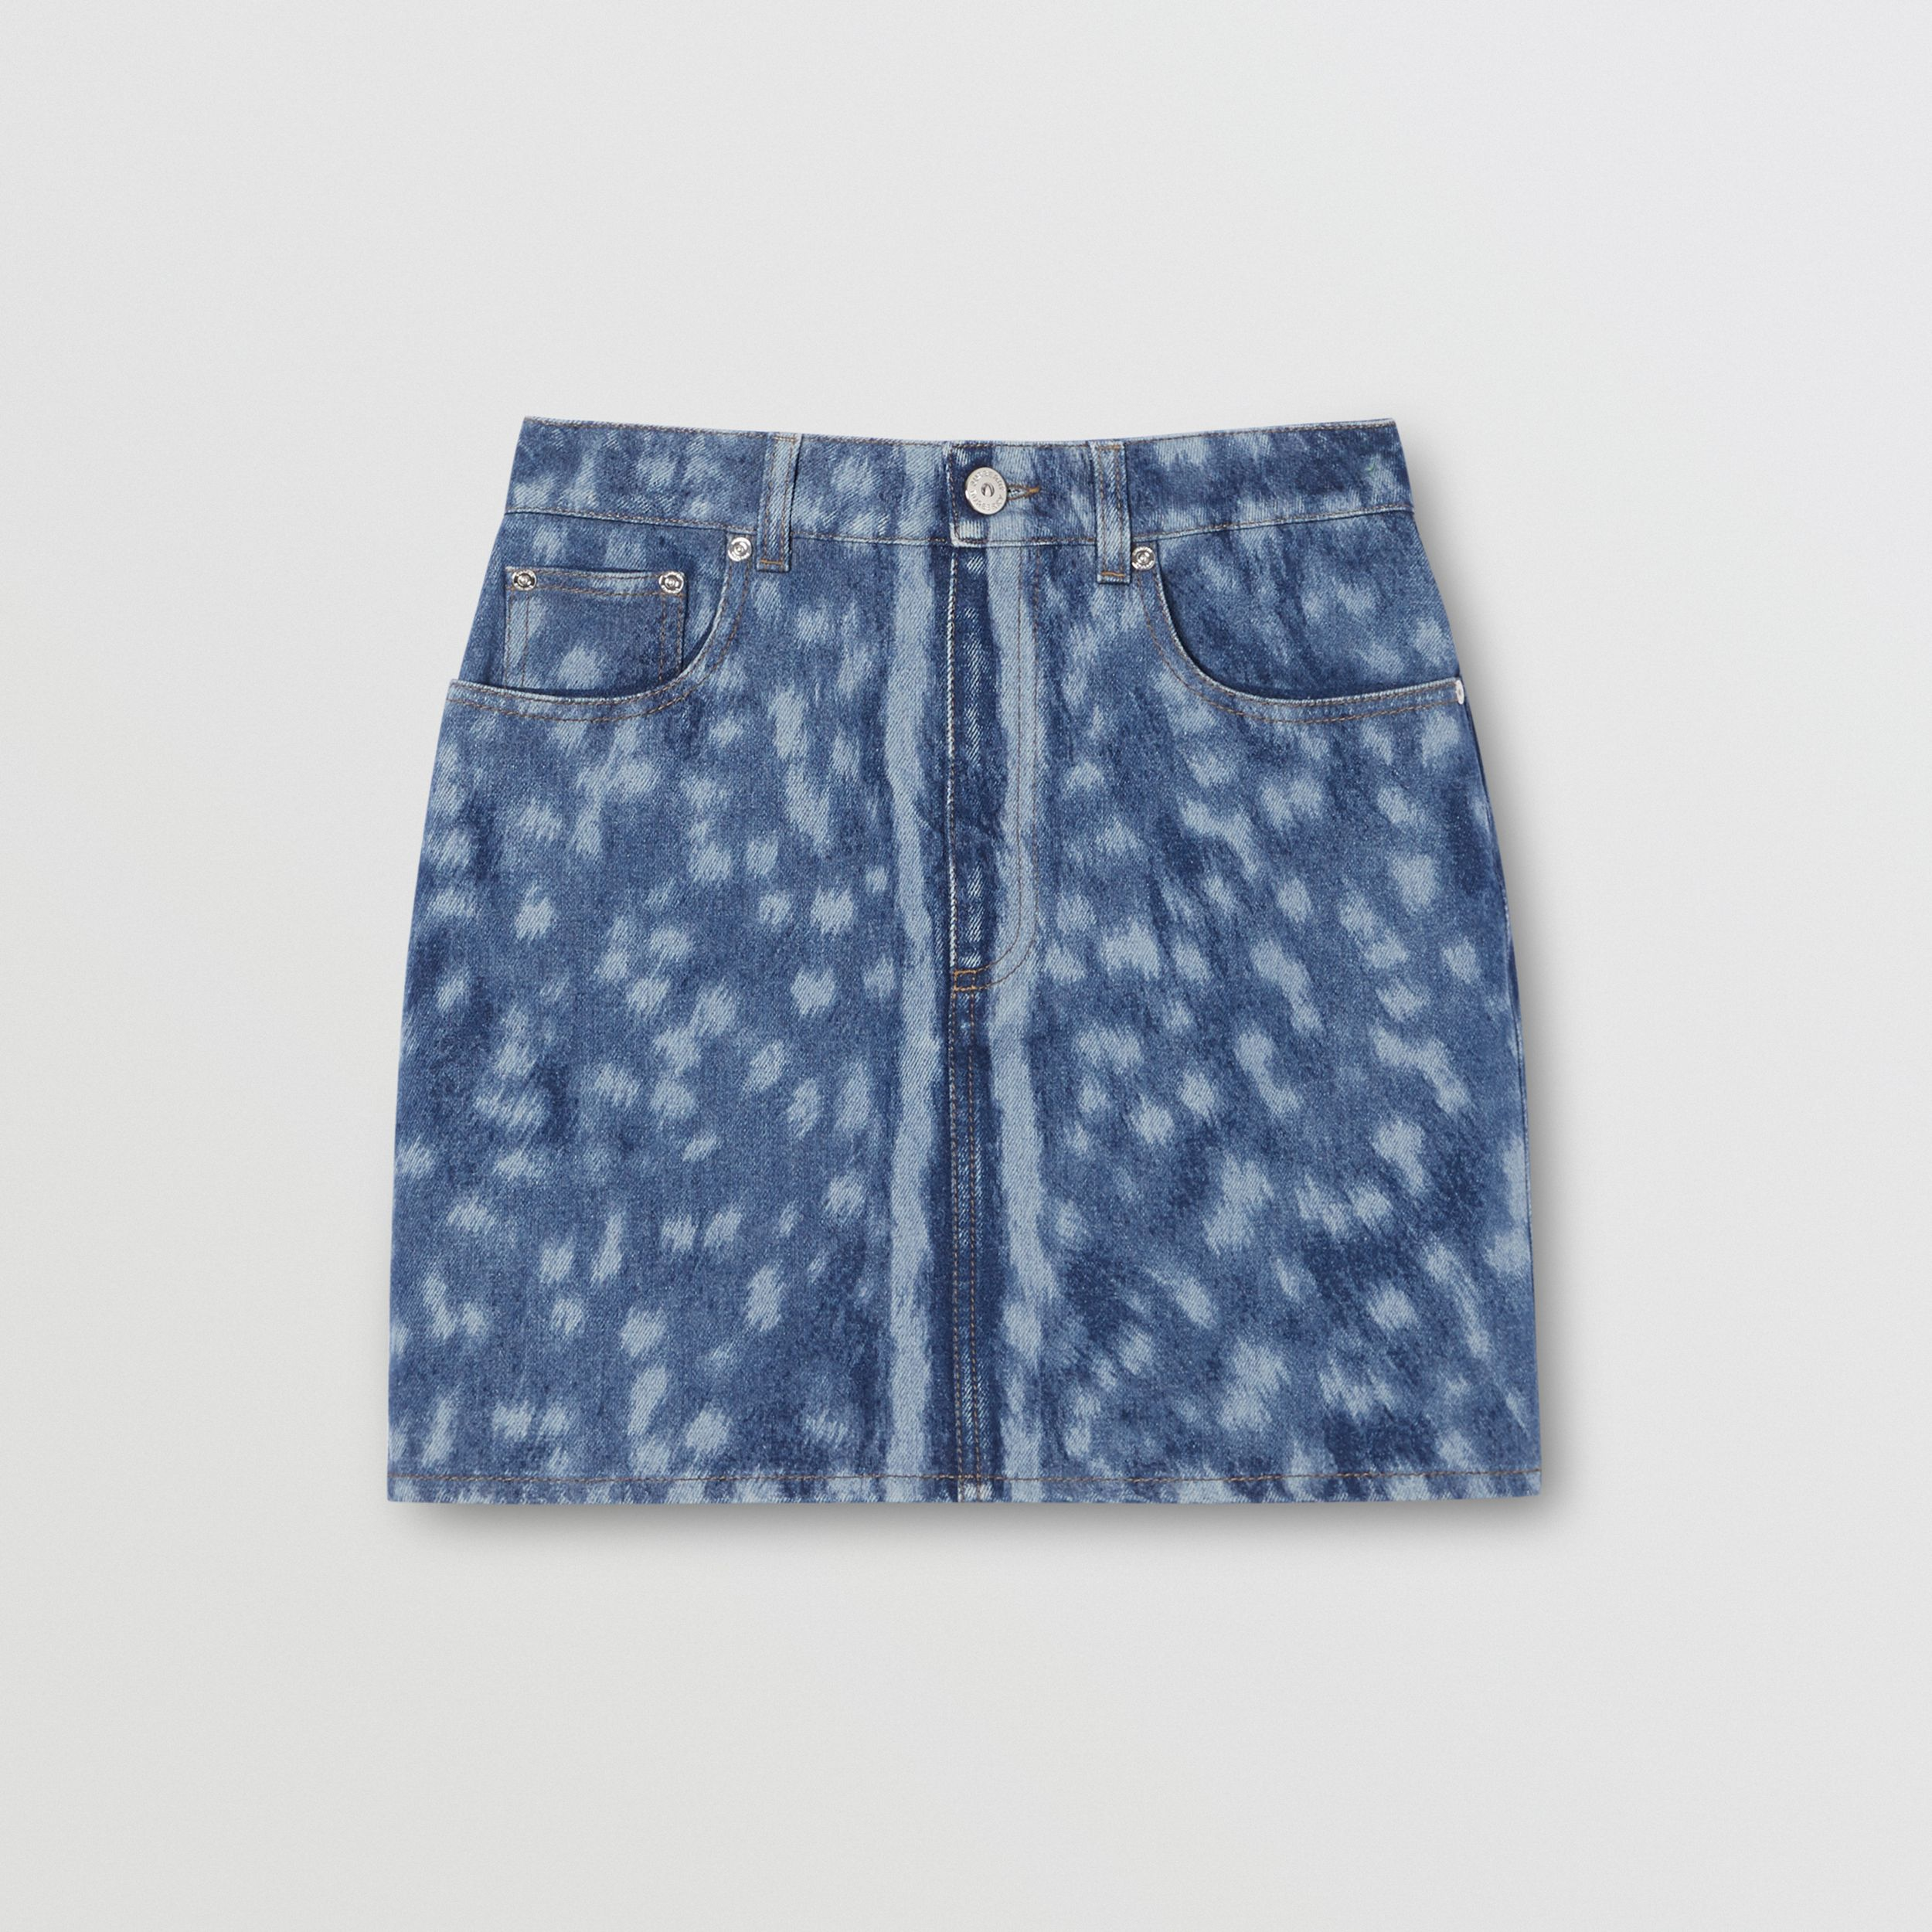 Deer Print Denim Mini Skirt in Mid Indigo - Women | Burberry United States - 4